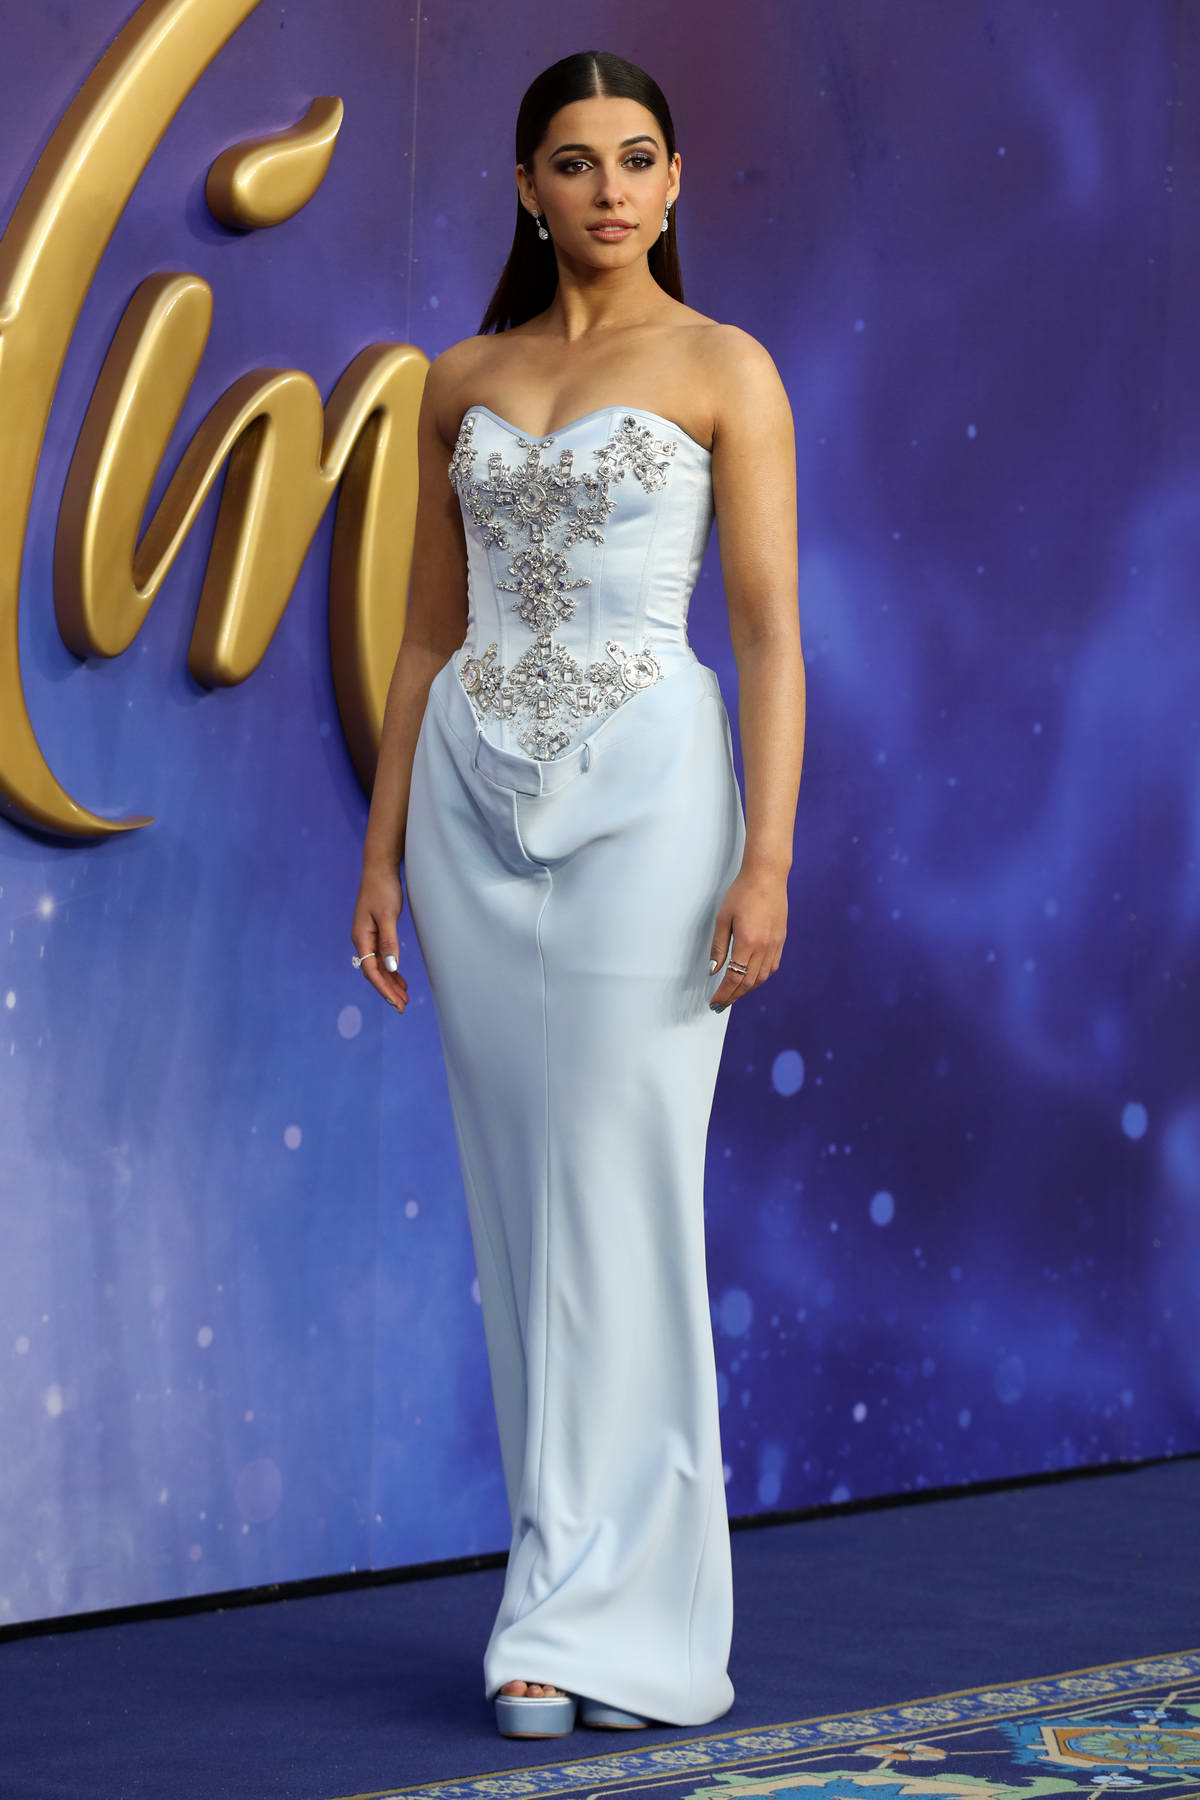 Naomi Scott attends the European Premiere of 'Aladdin' at Leicester Square in London, UK